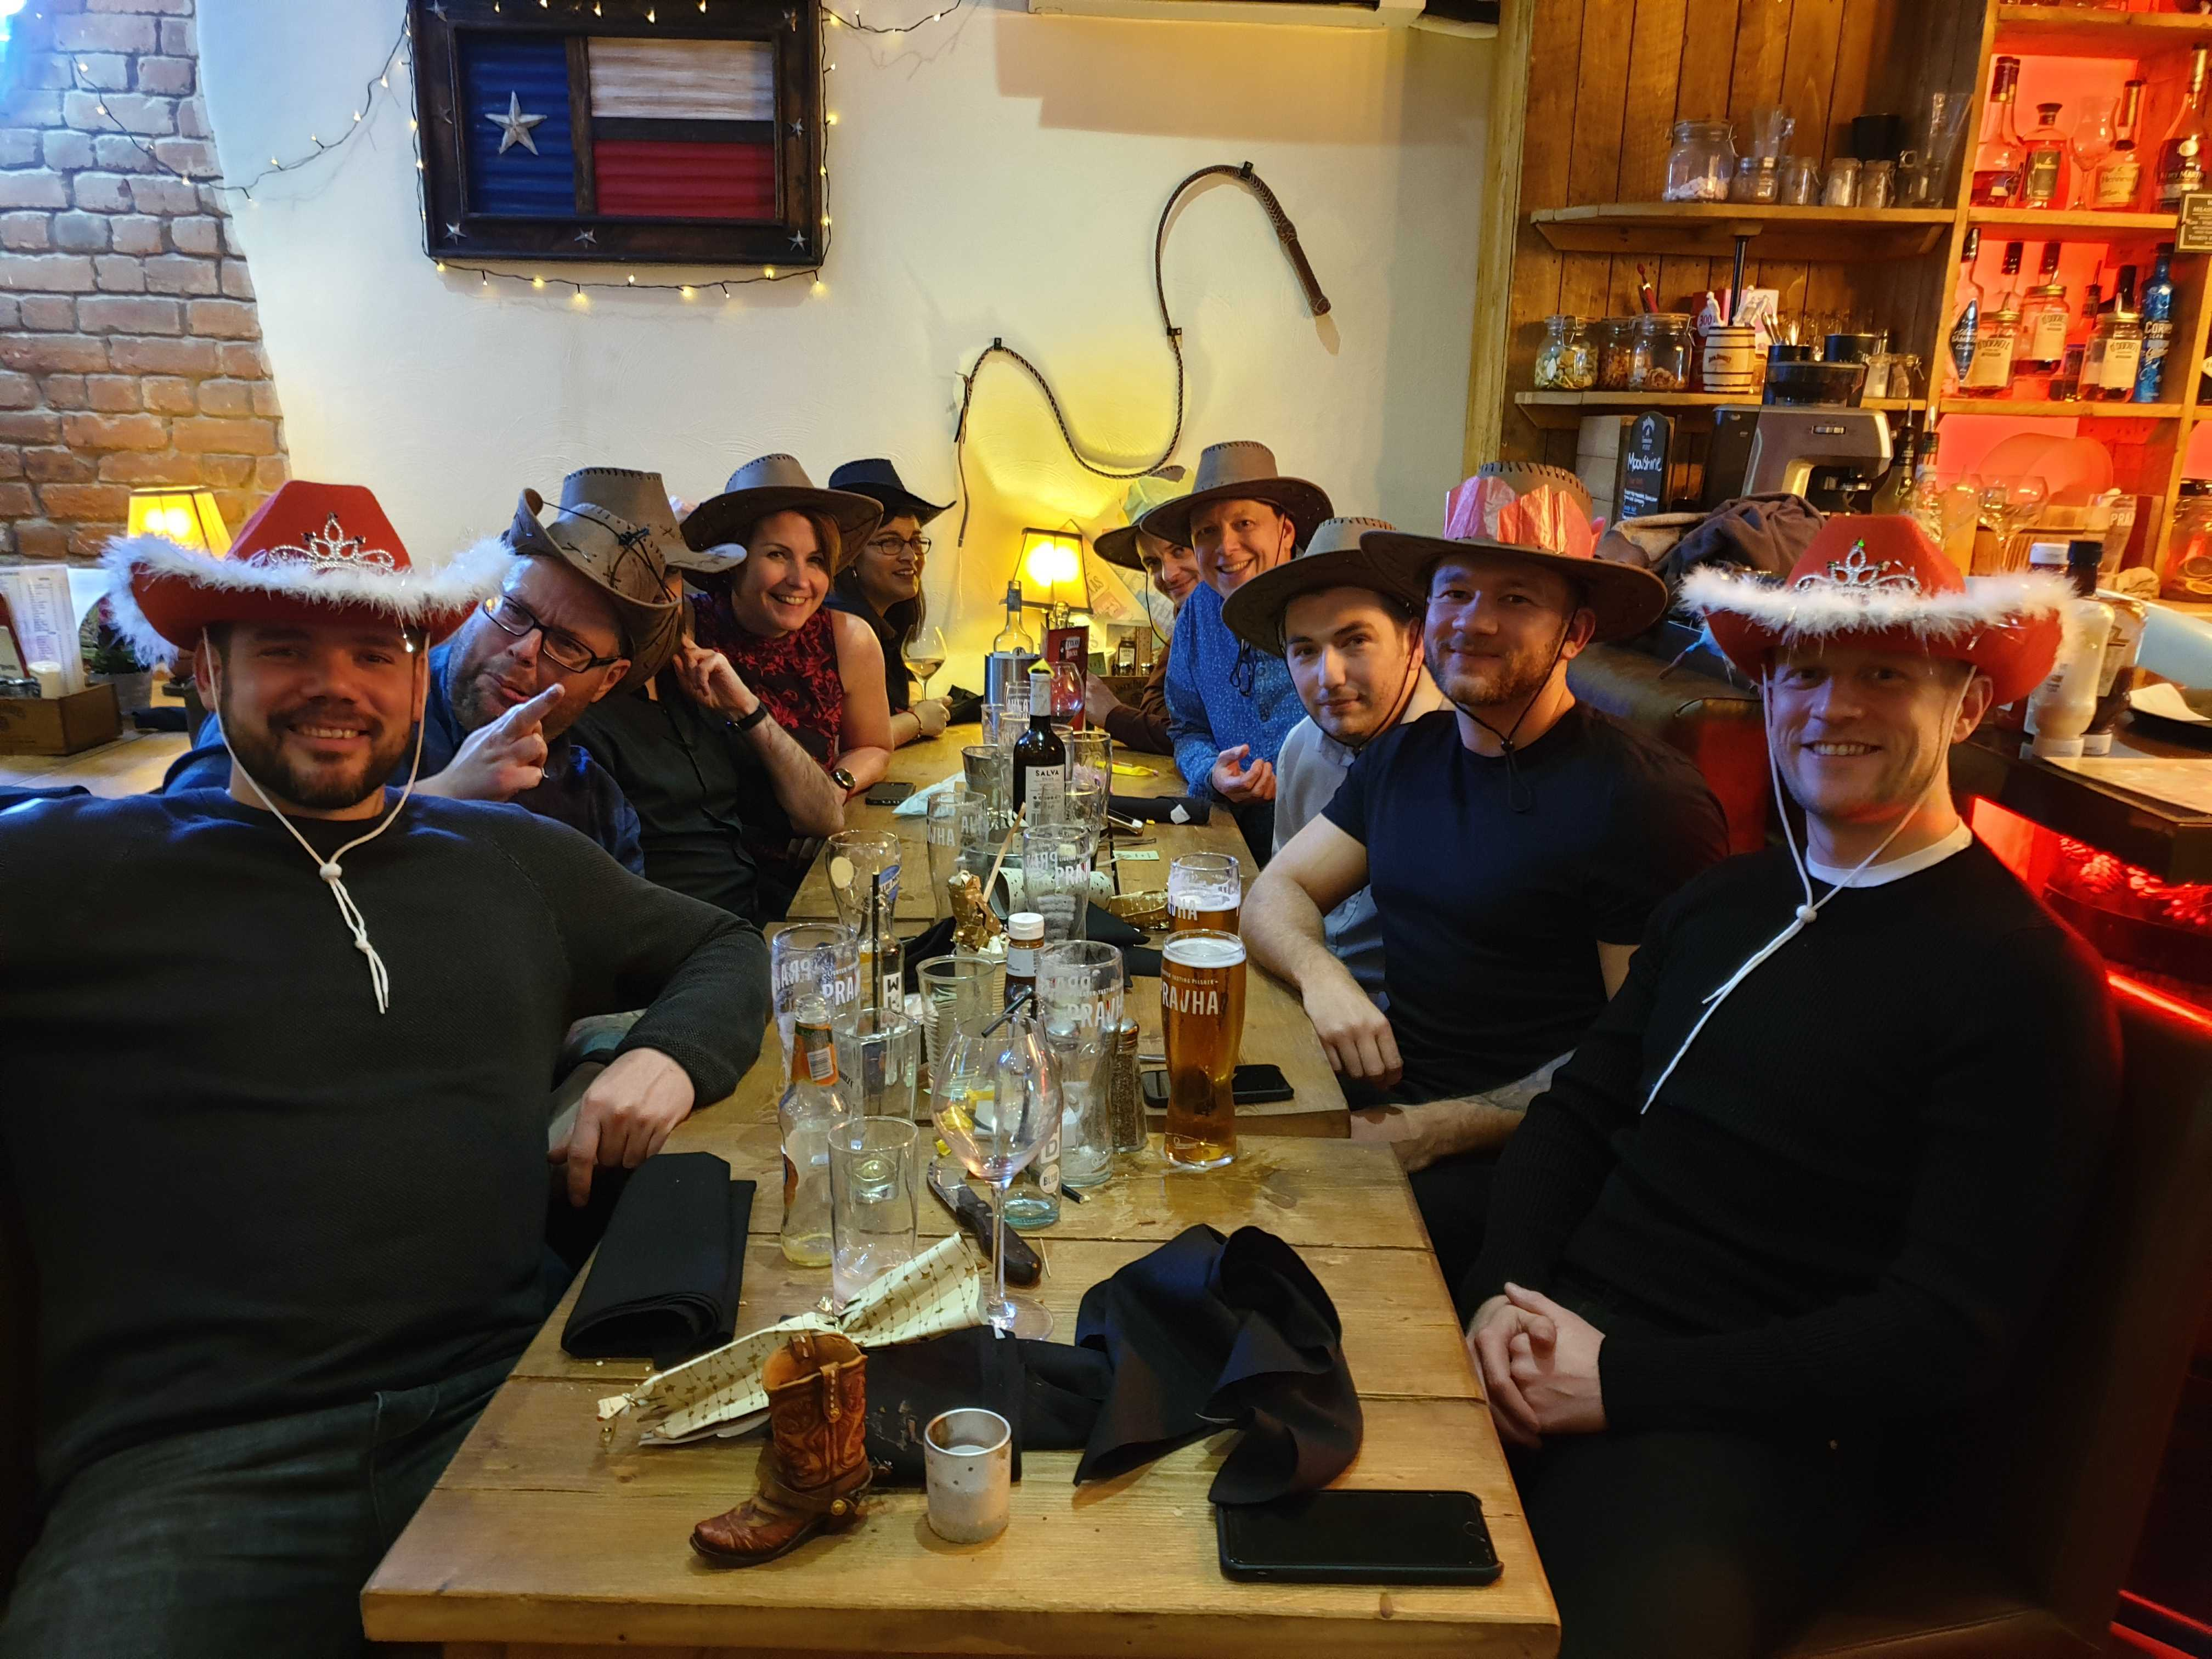 Gather Team celebrates Christmas in Cowboy hats